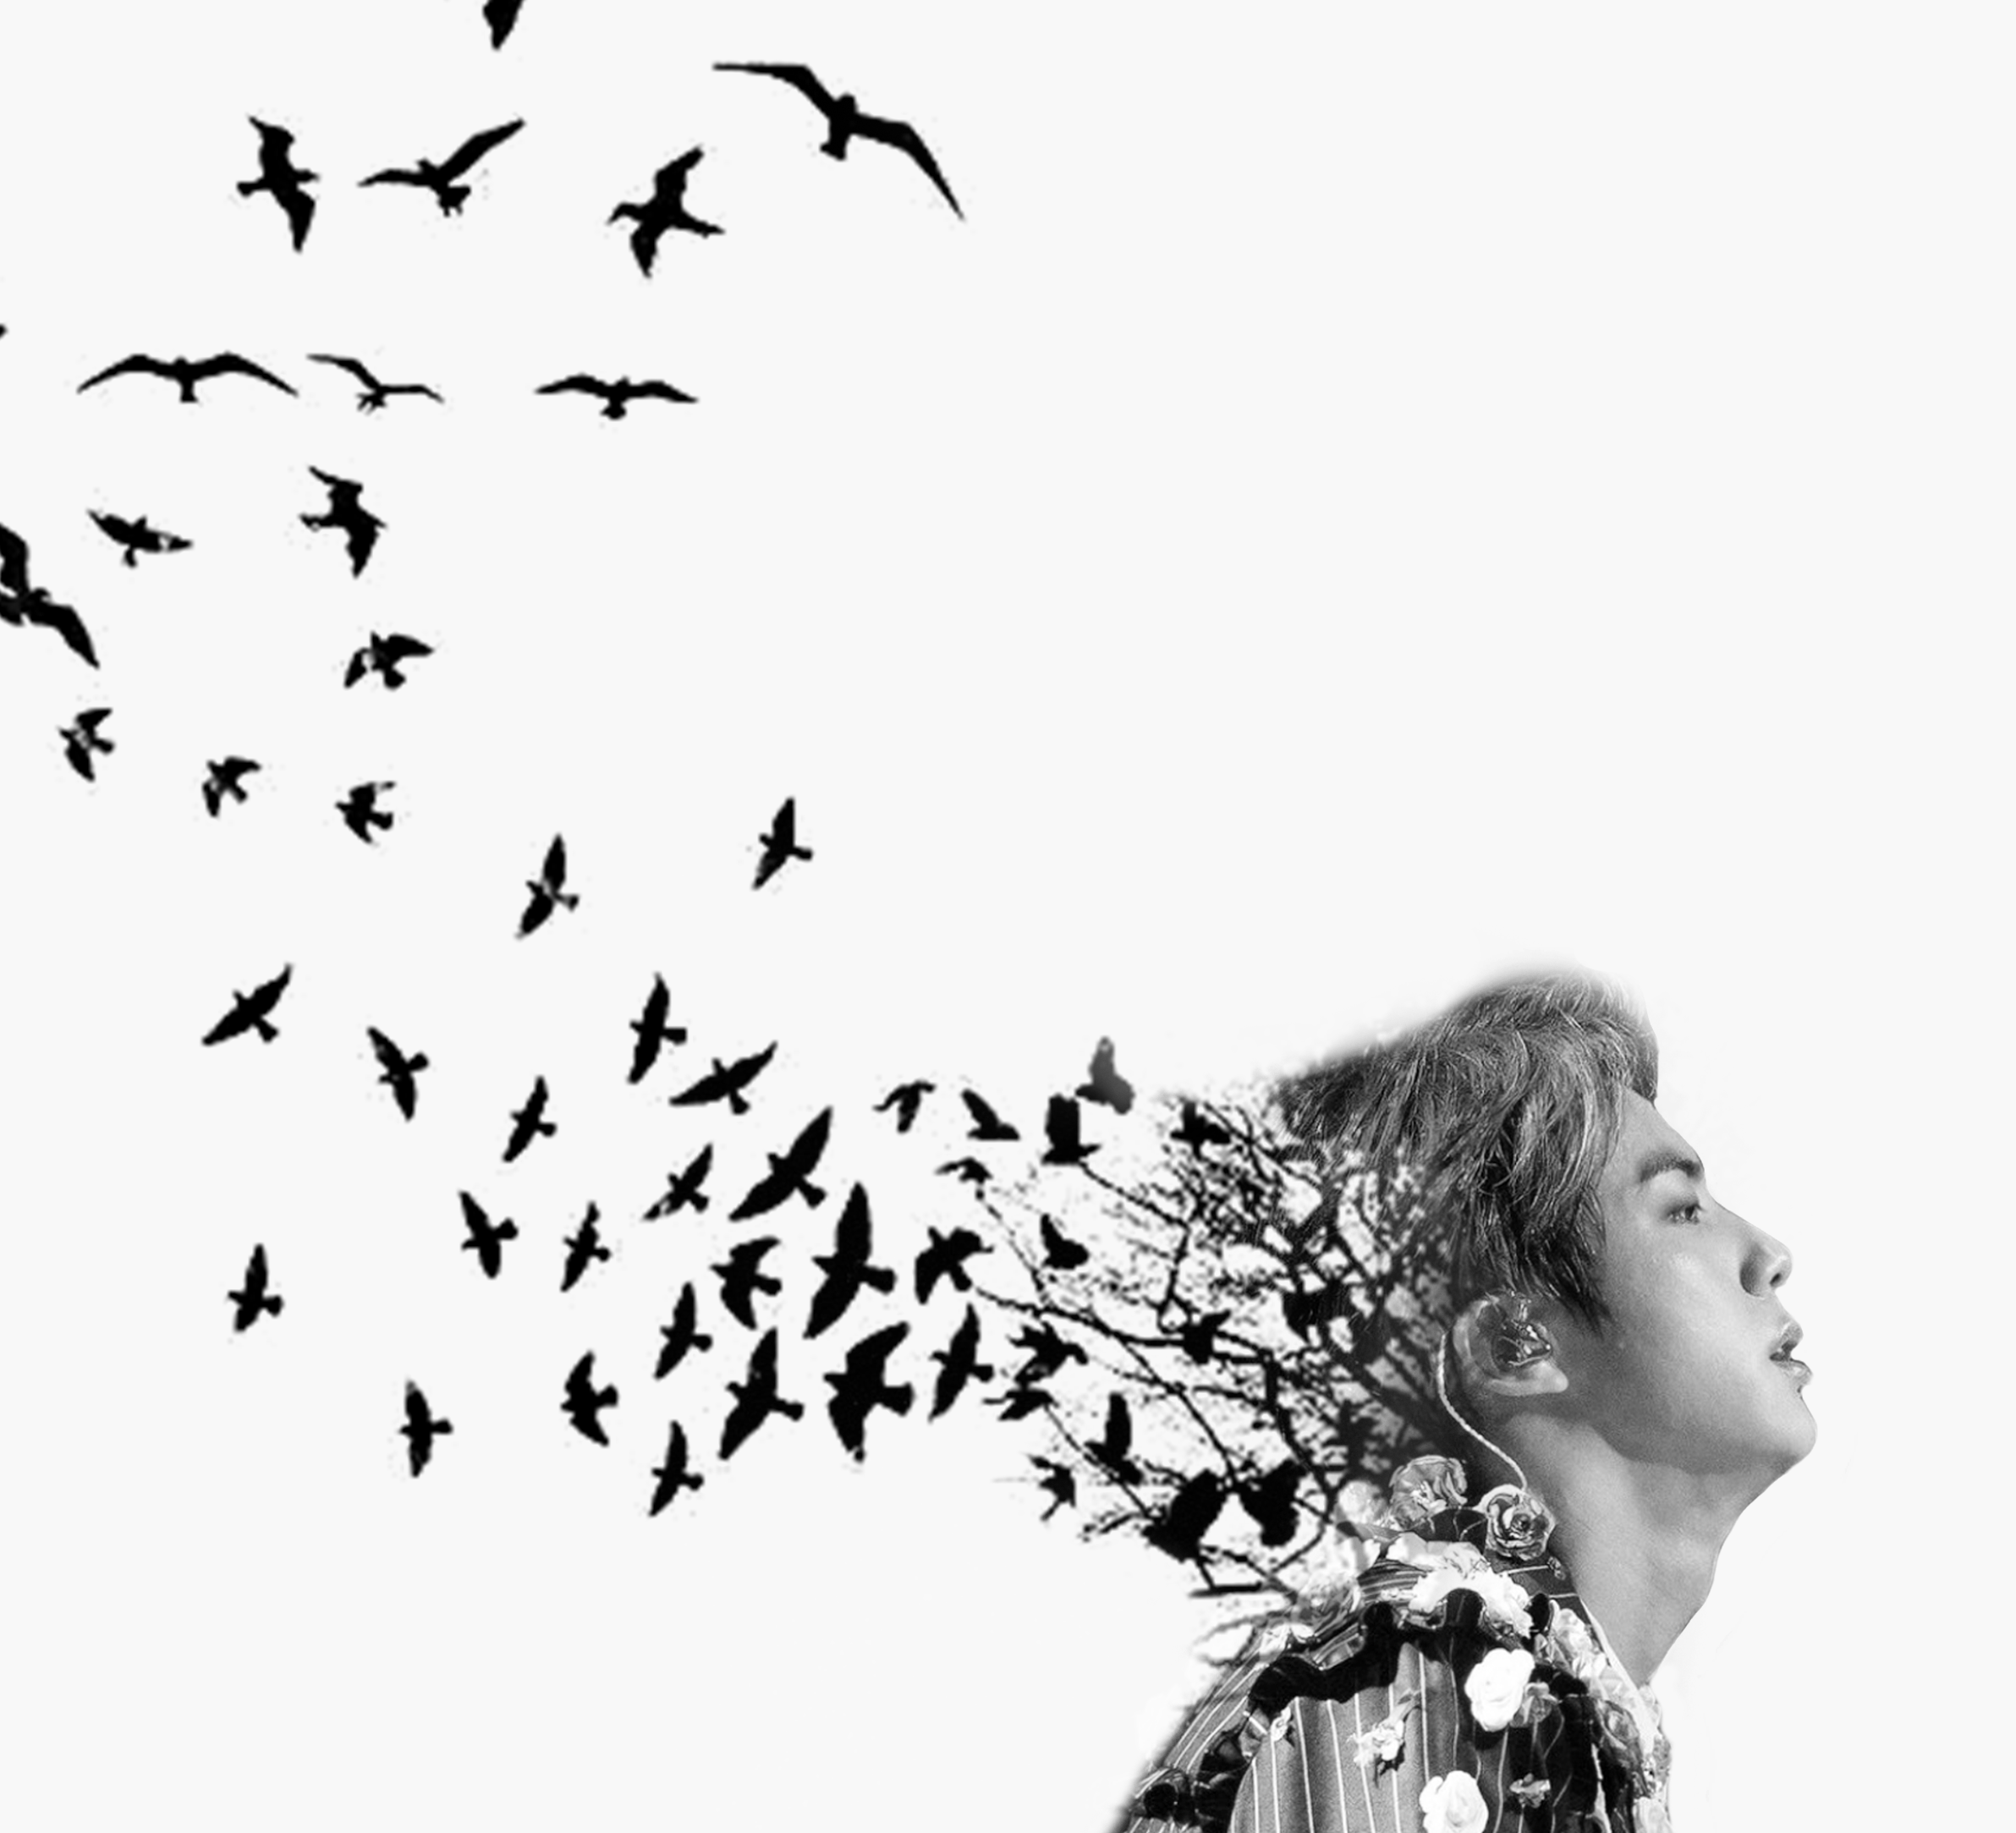 Jin Double Exposure